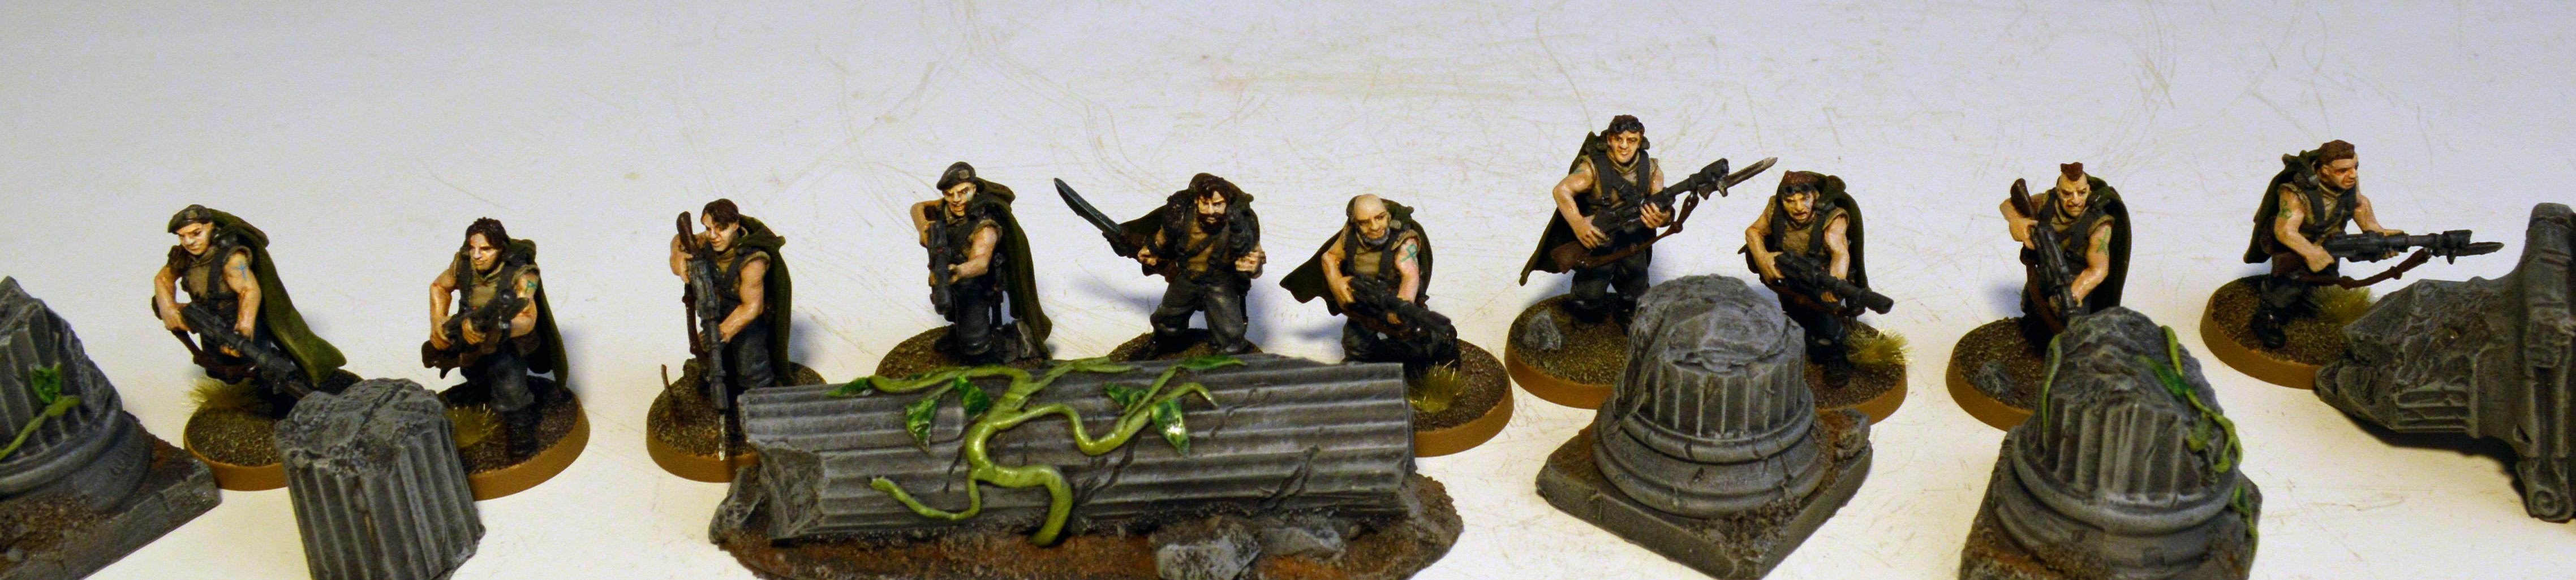 Tanith, Tanith First Infantry Squad 1